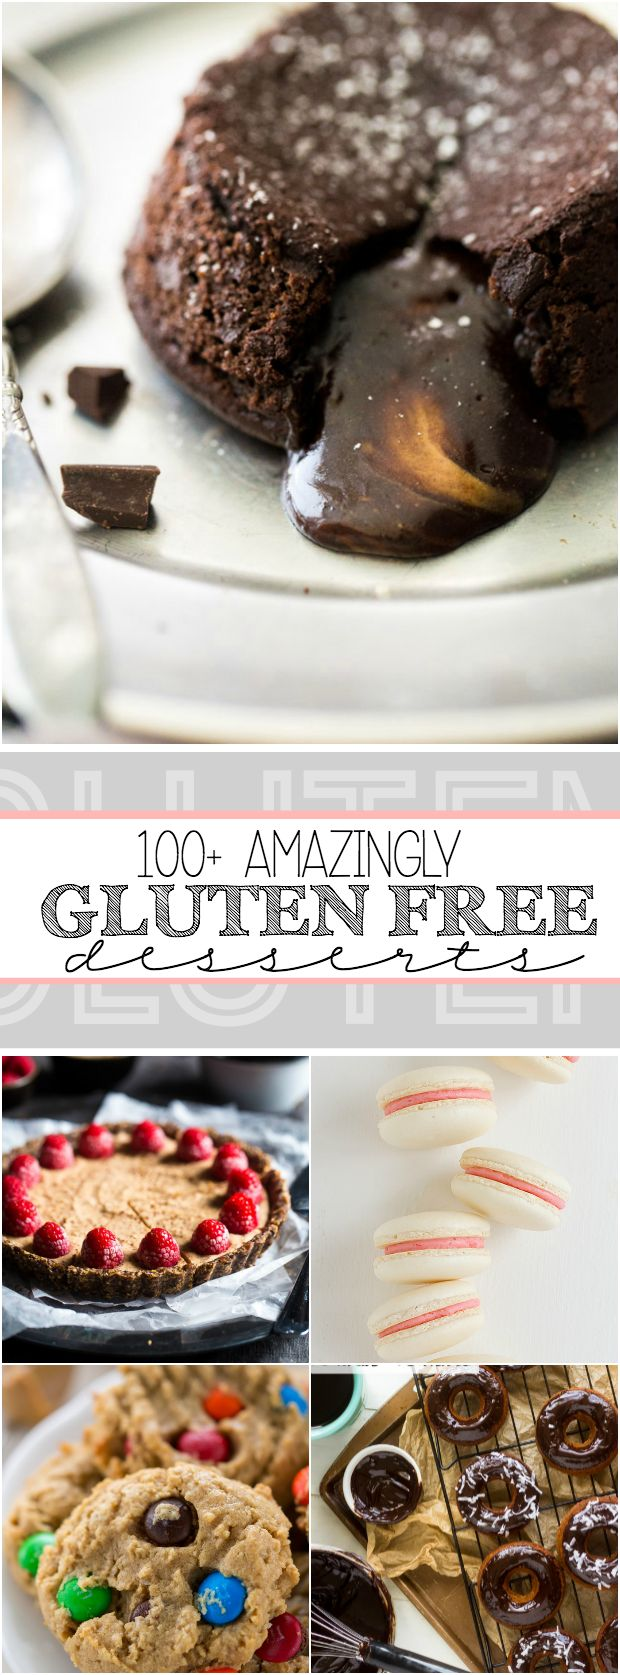 100+ Amazingly Gluten Free Desserts posted by taylor...Please note: many (or all) of these photos do not belong to me. If you want to pin a specific image, please click on it to visit it's original source.